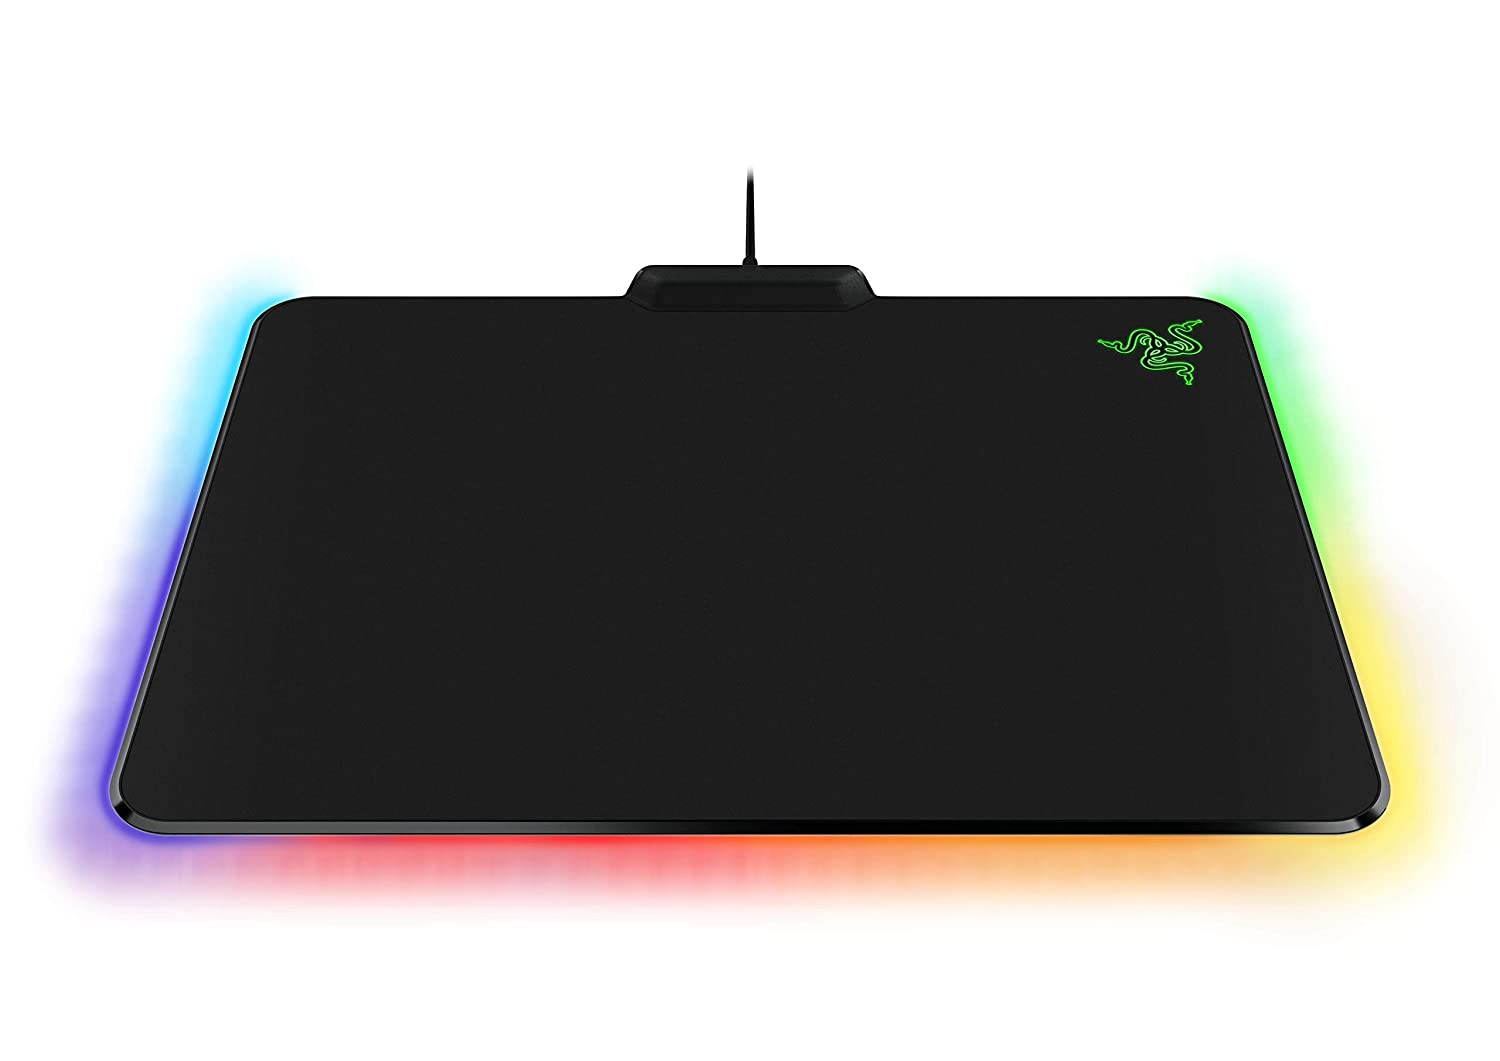 Razer Firefly Chroma Cloth Gaming Mouse Pad Customizable Chroma RGB Lighting – 14 x10 – Balanced Control Speed – Non-Slip Rubber Base